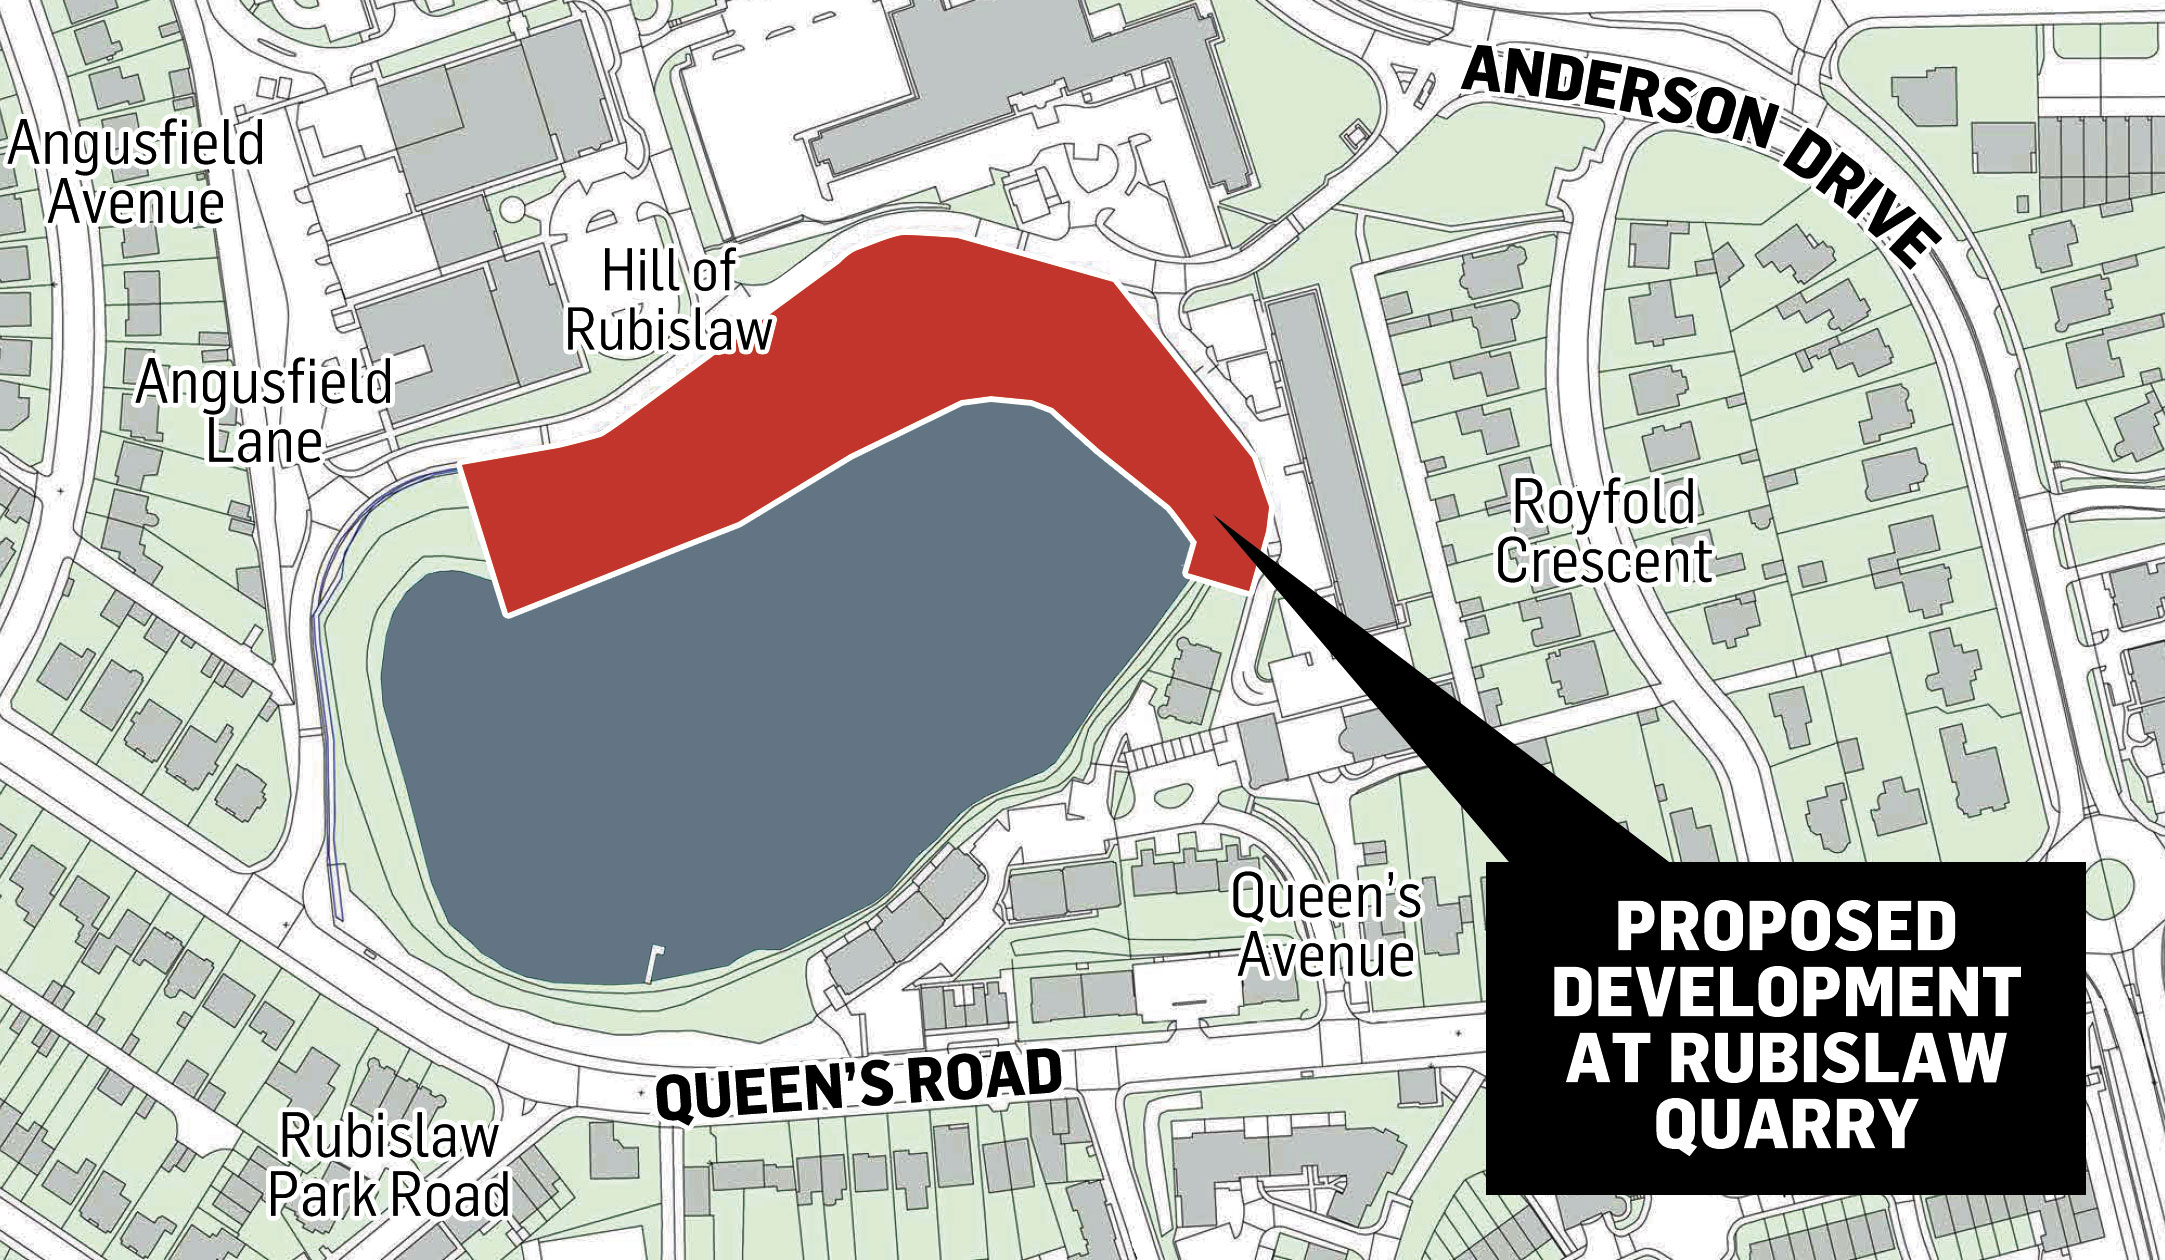 A map showing the planned development at Rubislaw Quarry